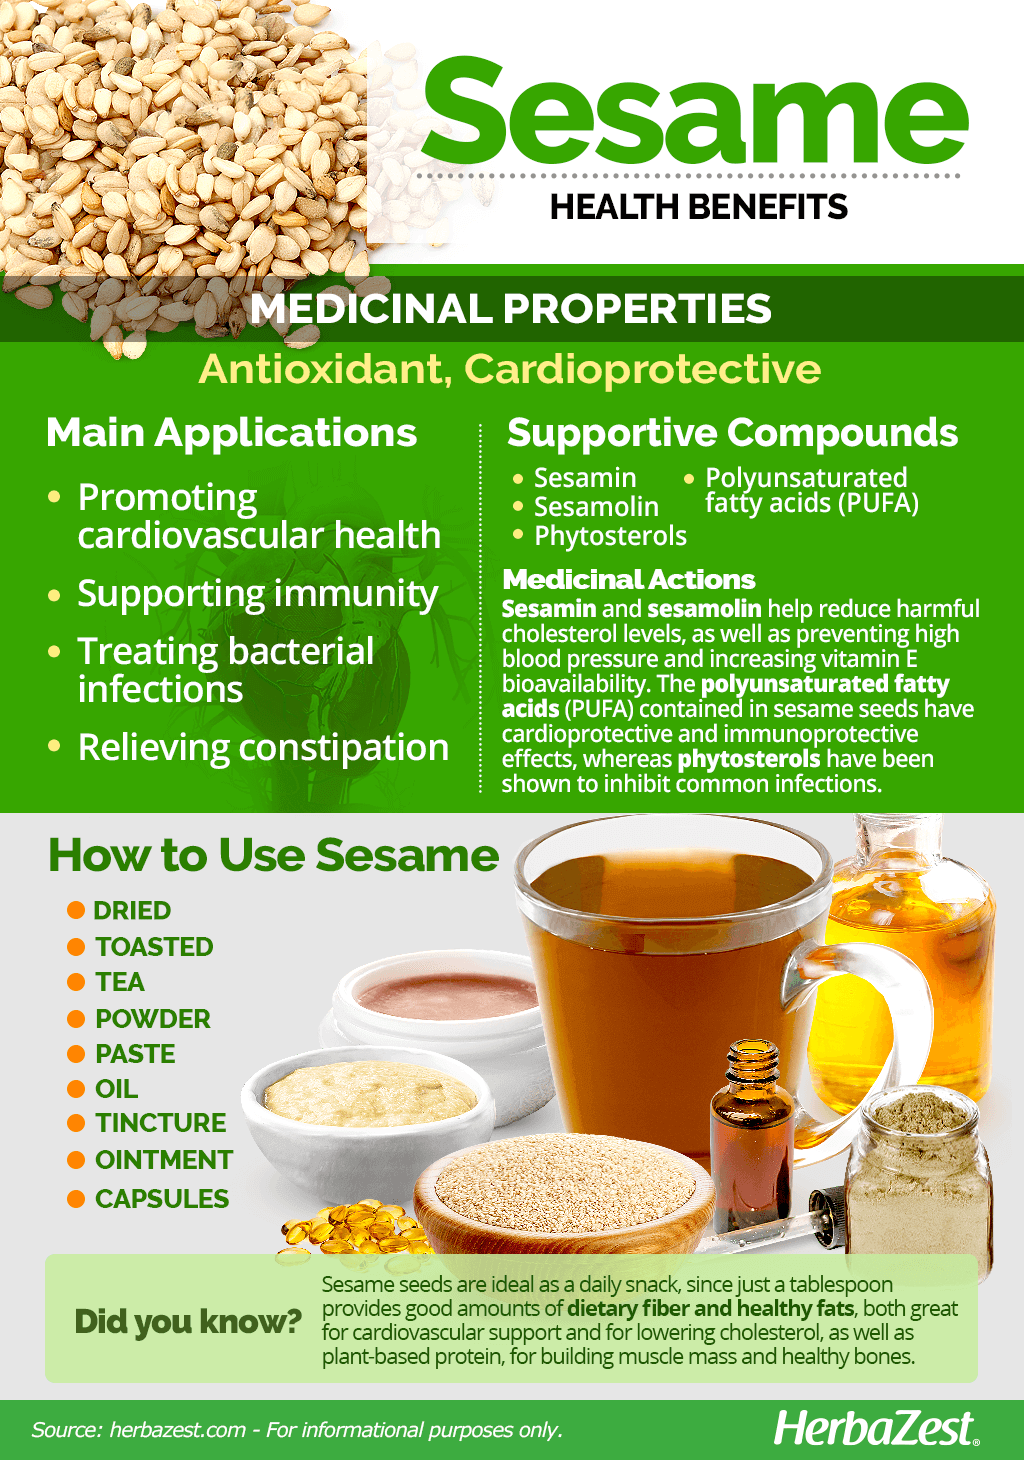 All About Sesame